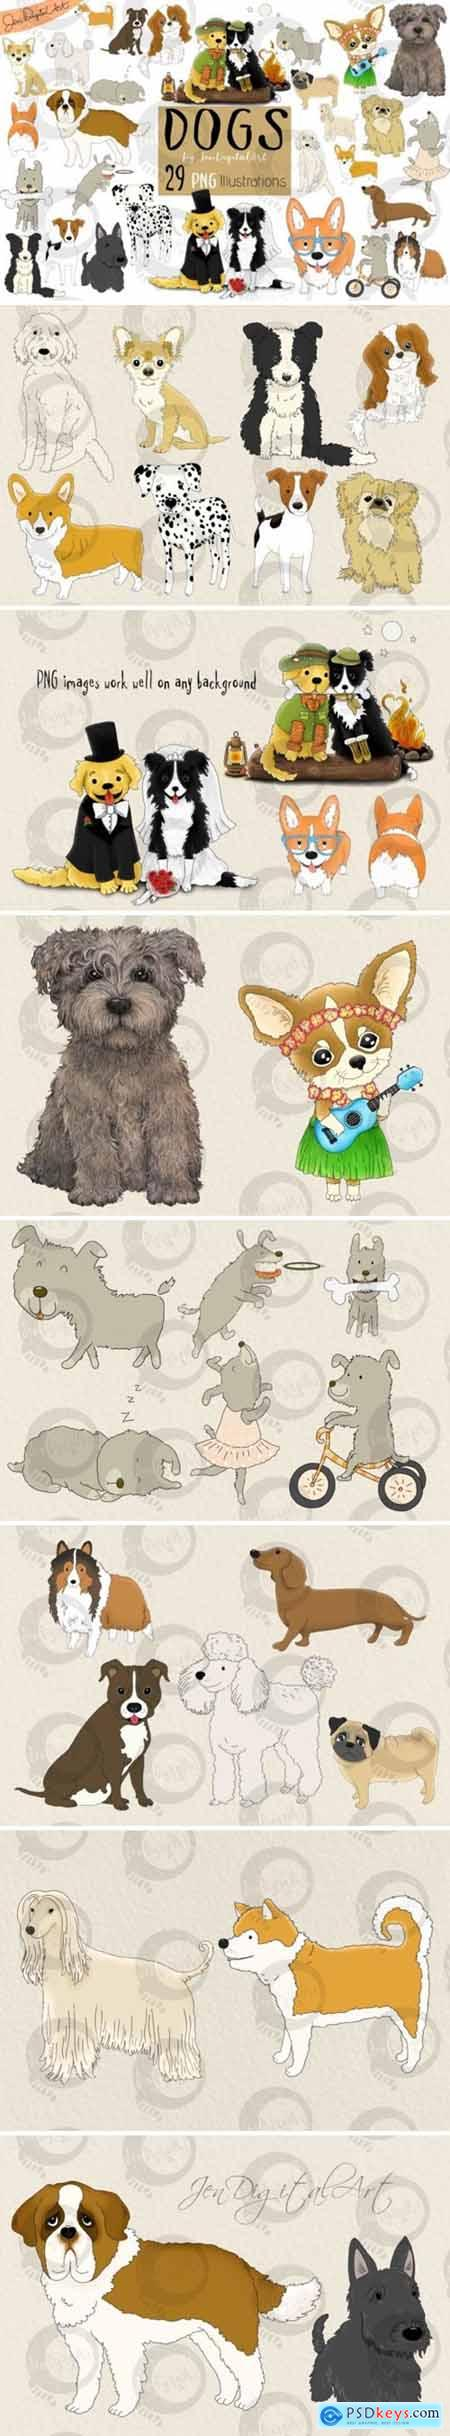 Dogs - Big Graphics Set 4283318